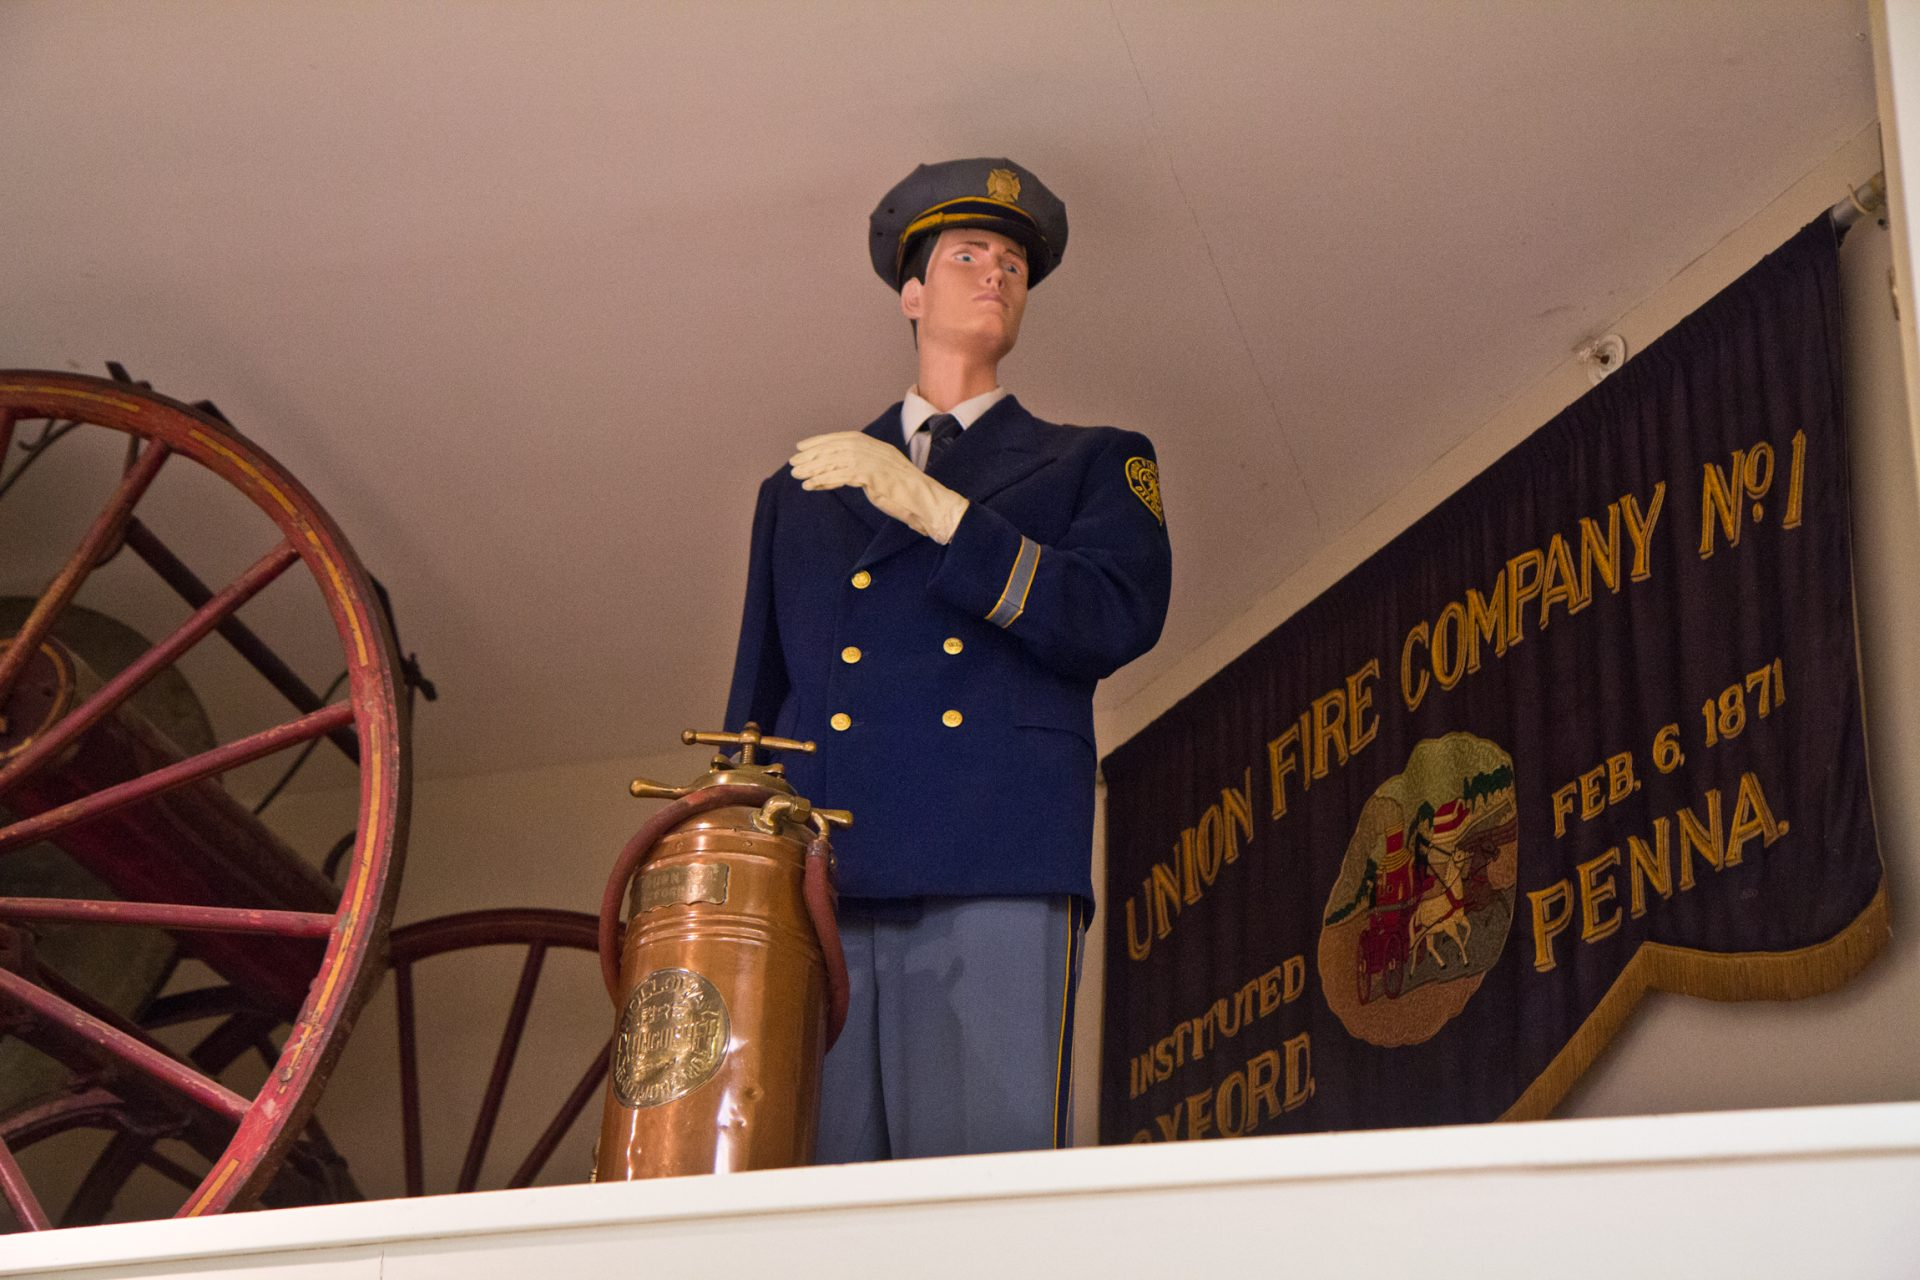 The Oxford fire company has been operating since 1871.